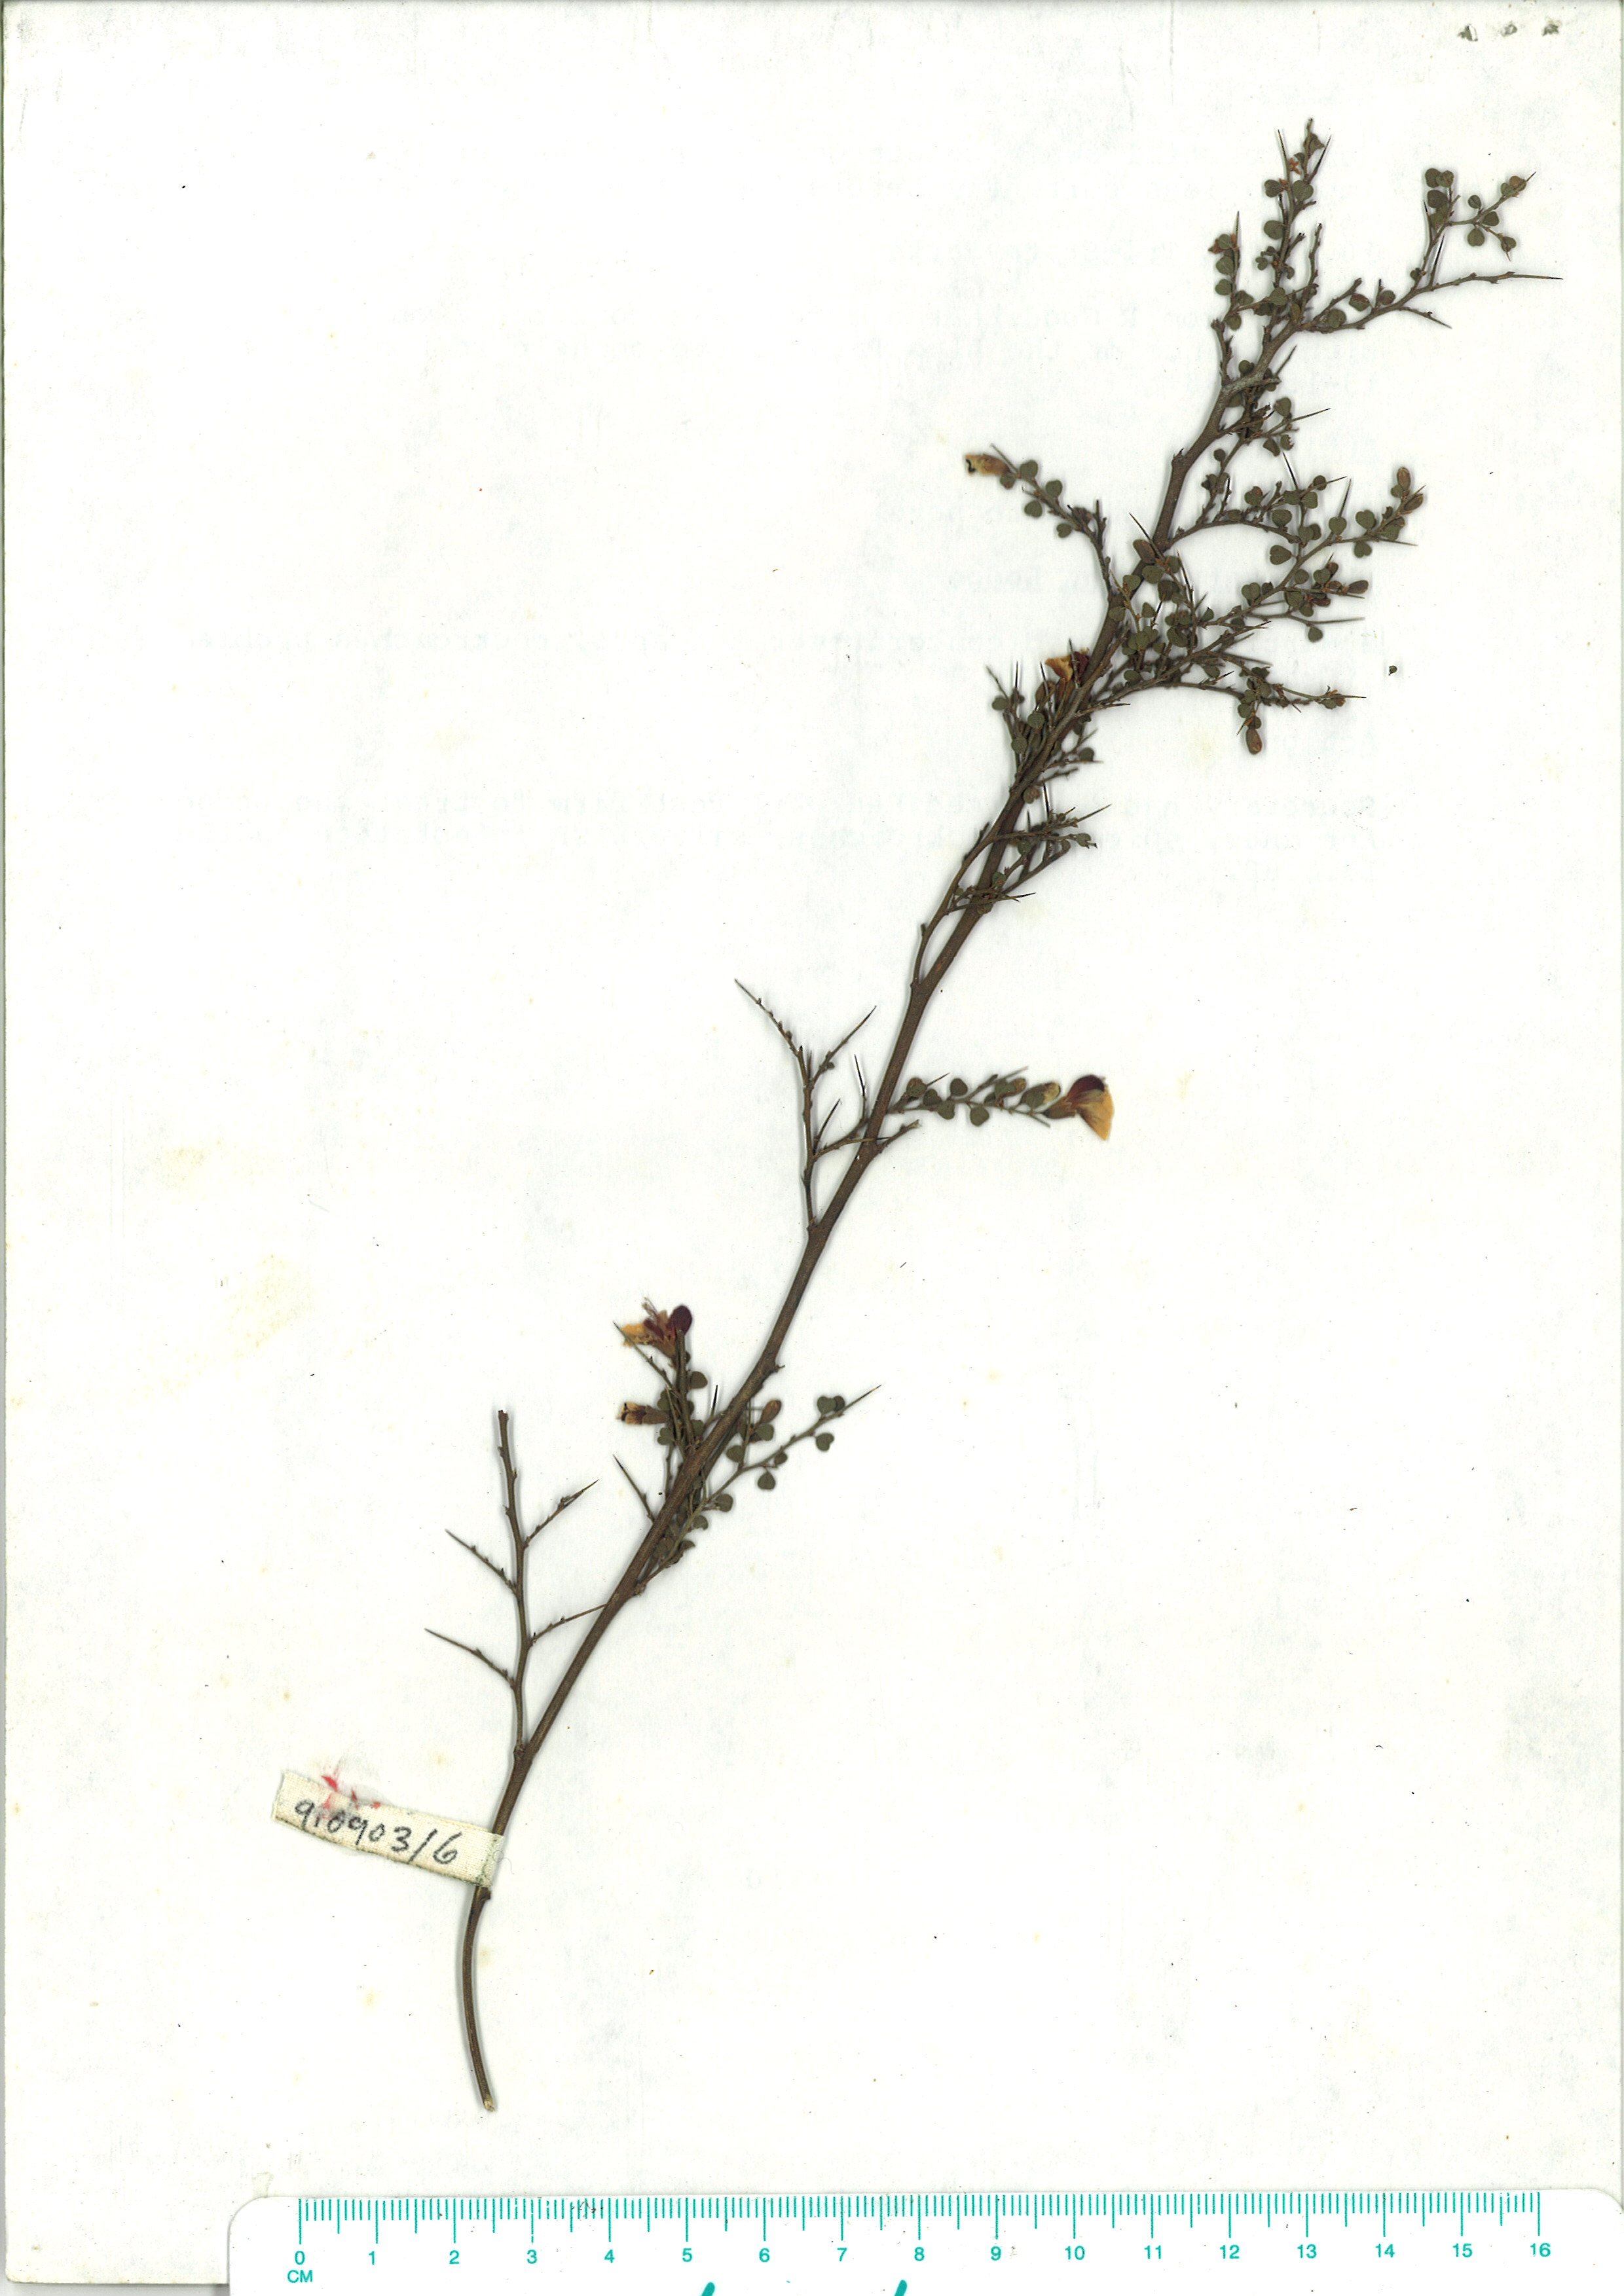 Scanned image of herbarium image of Bossiaea obcordata